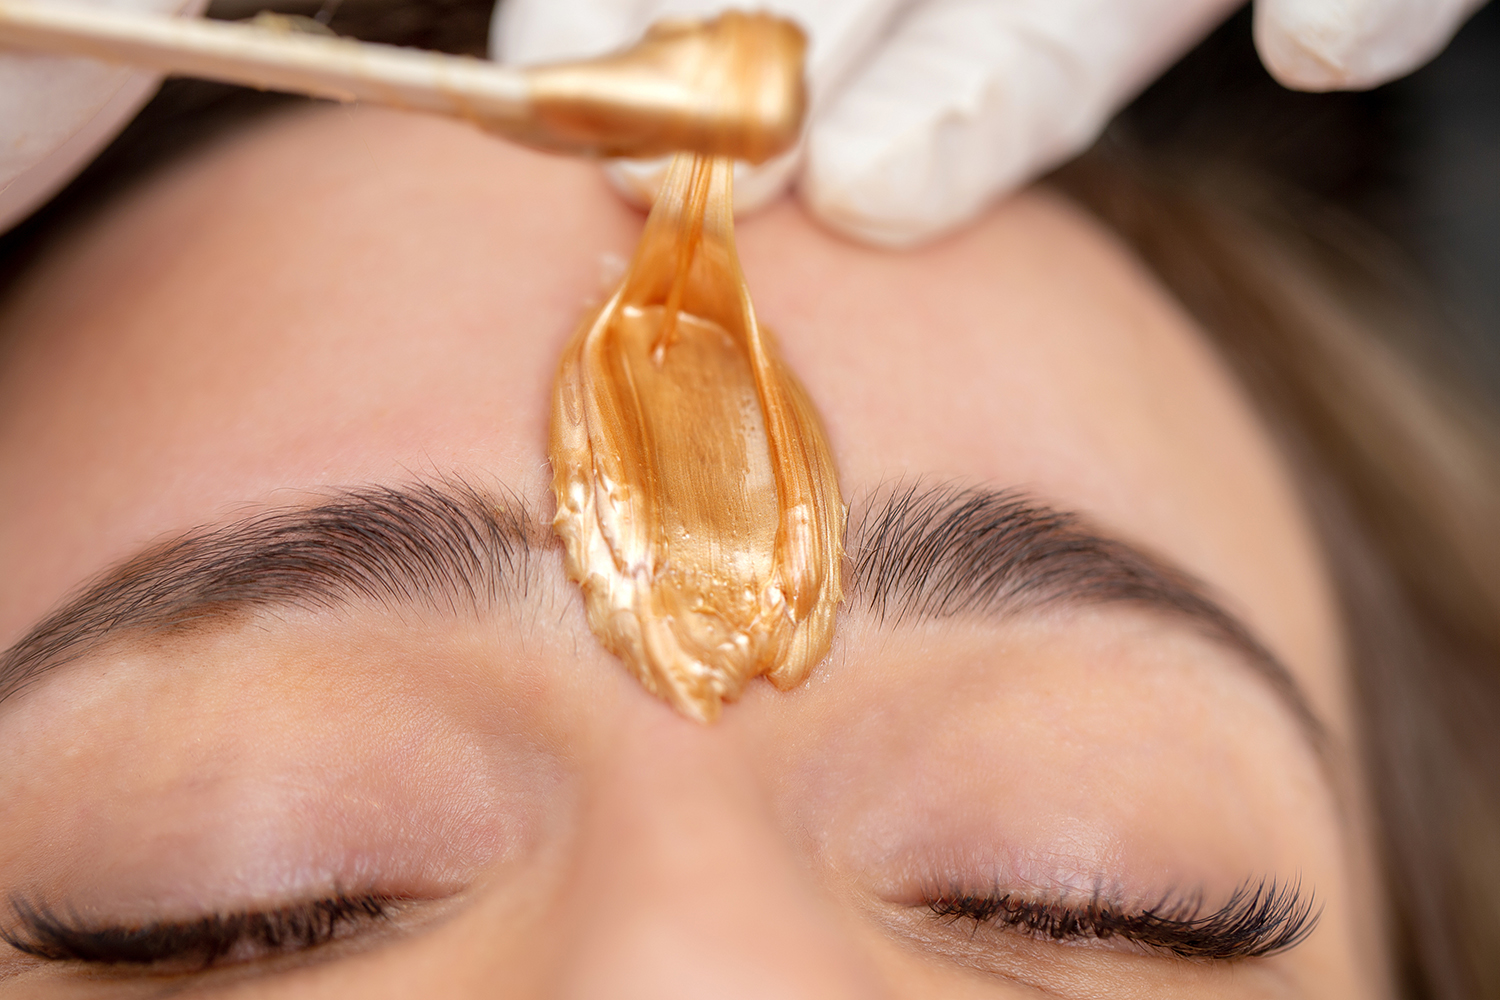 Applying Facial Wax Between Eyebrows - stock photo